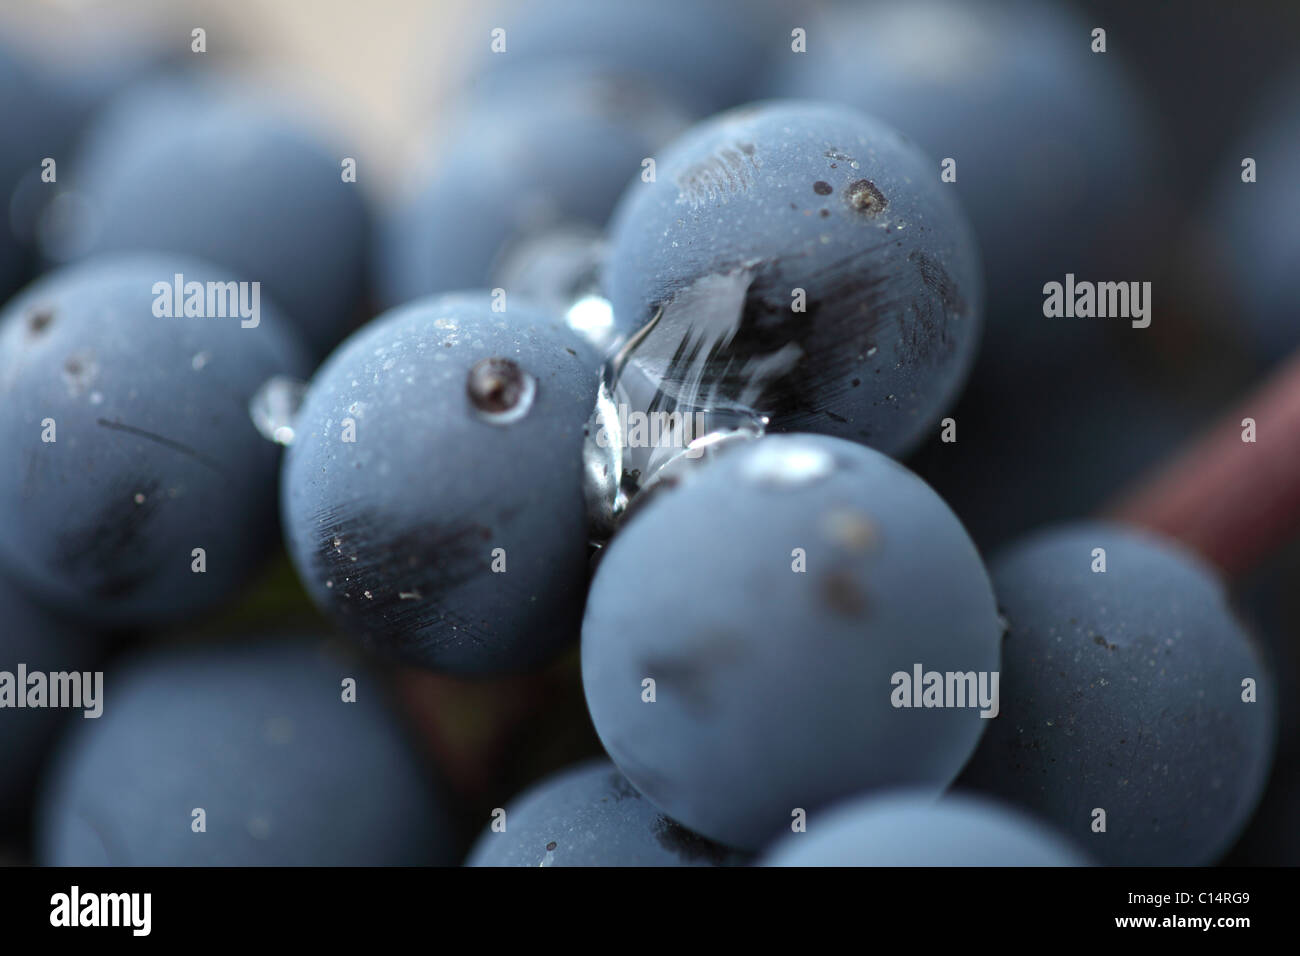 Red Cabernet Sauvignon grapes in Bordeaux - Stock Image